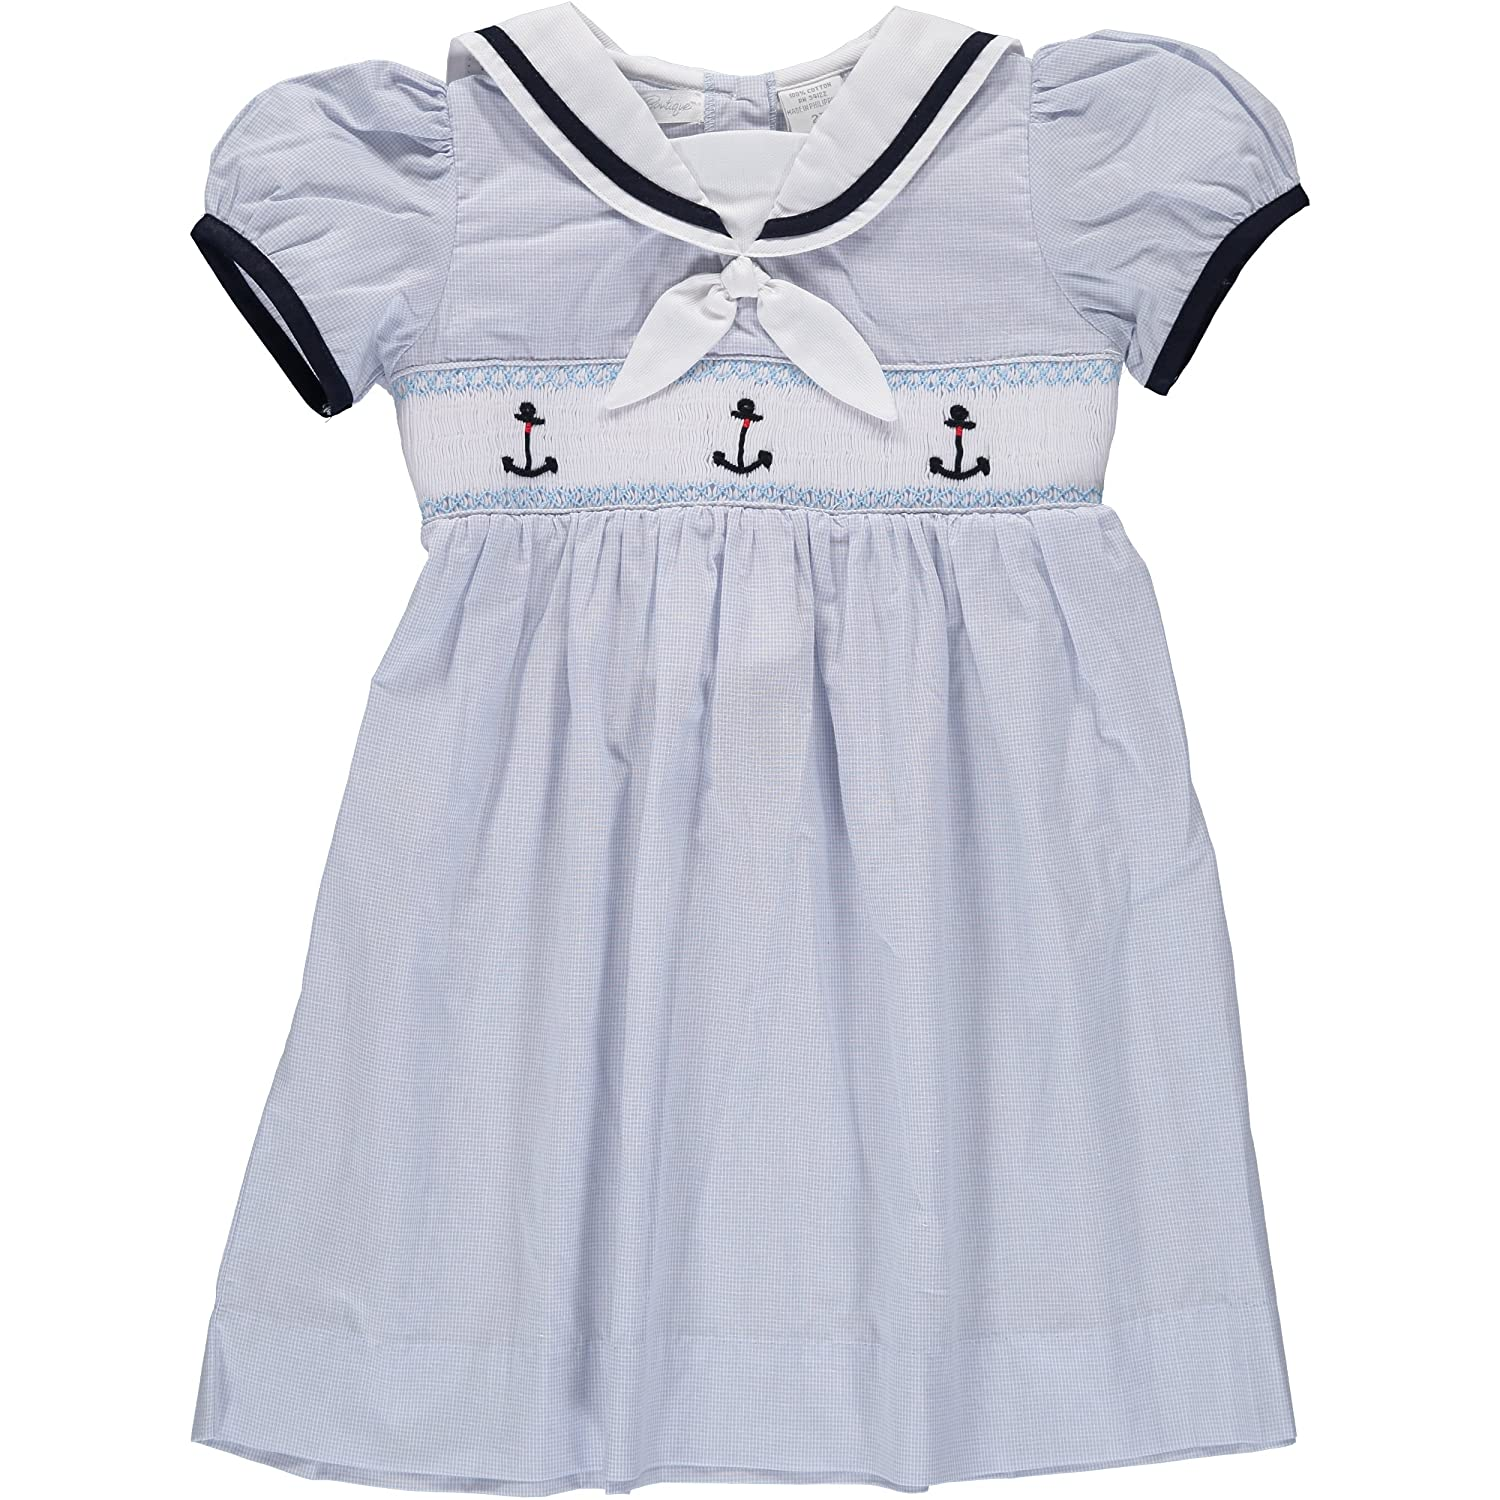 Kids 1950s Clothing & Costumes: Girls, Boys, Toddlers Smocked Anchor Blue Dress Baby Toddler Carriage Boutique  $58.00 AT vintagedancer.com